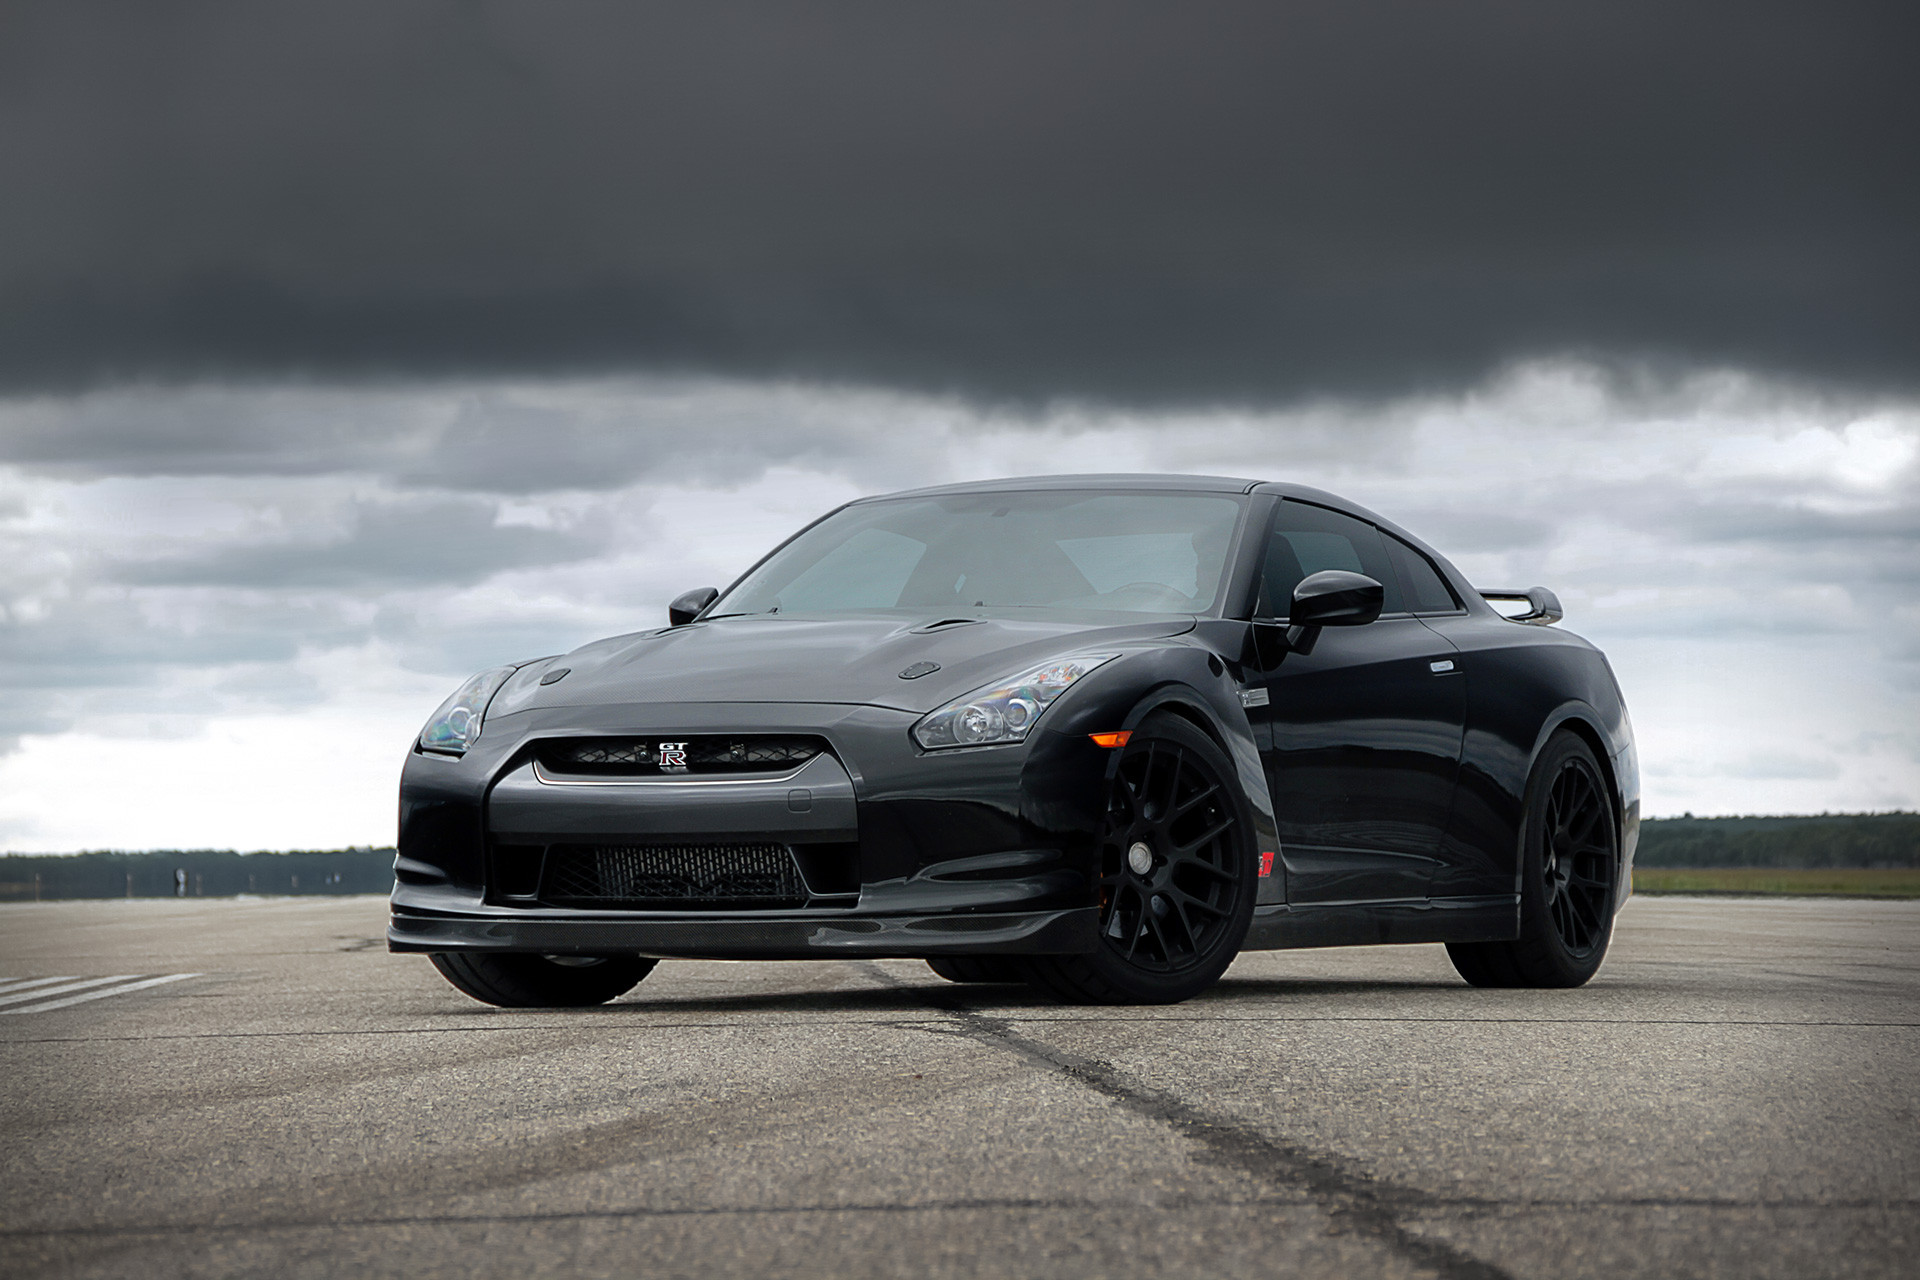 Gtr Alpha 12 >> Nissan Gt R The Sky Is The Limit George Herald